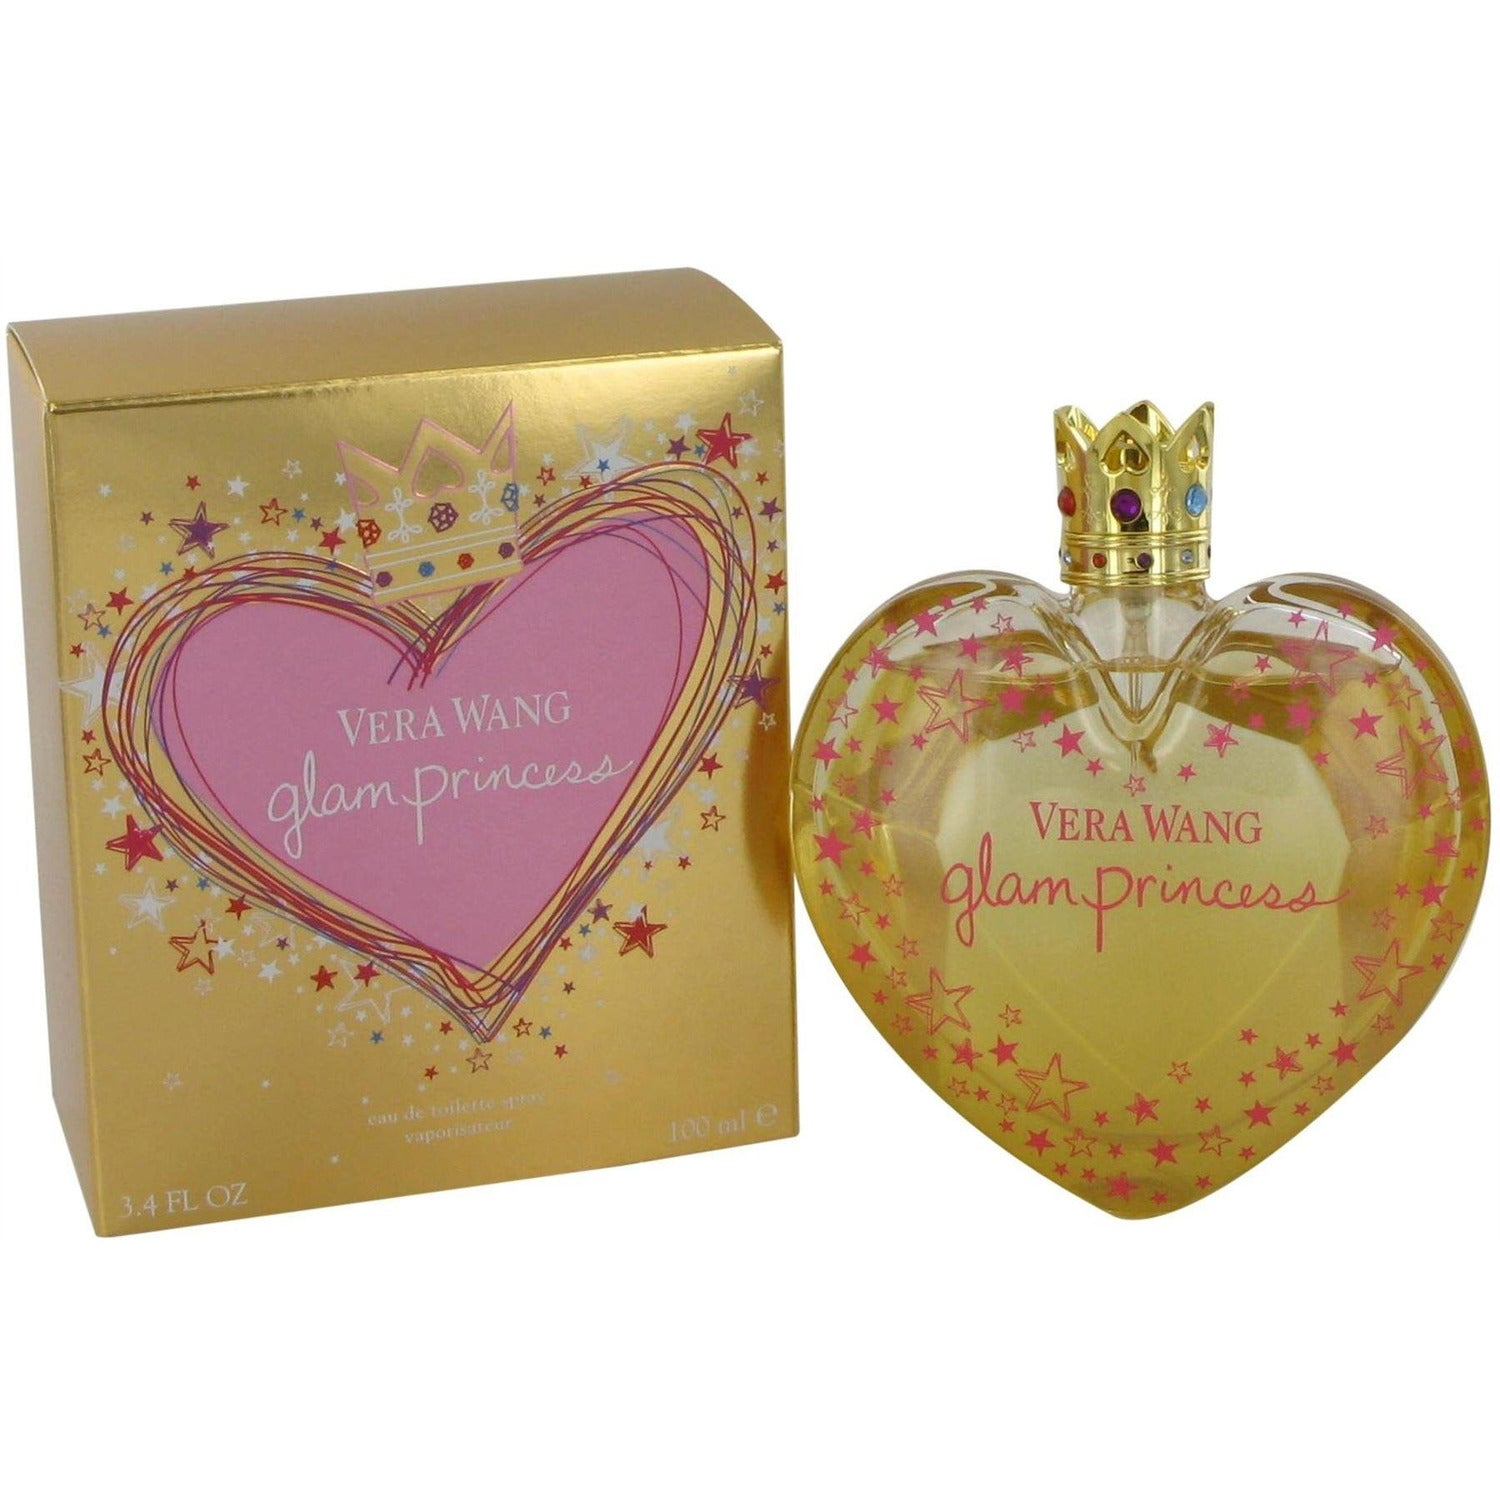 glam-princess-vera-wang-women-perfume-edt-3-4-oz-3-3-new-in-box